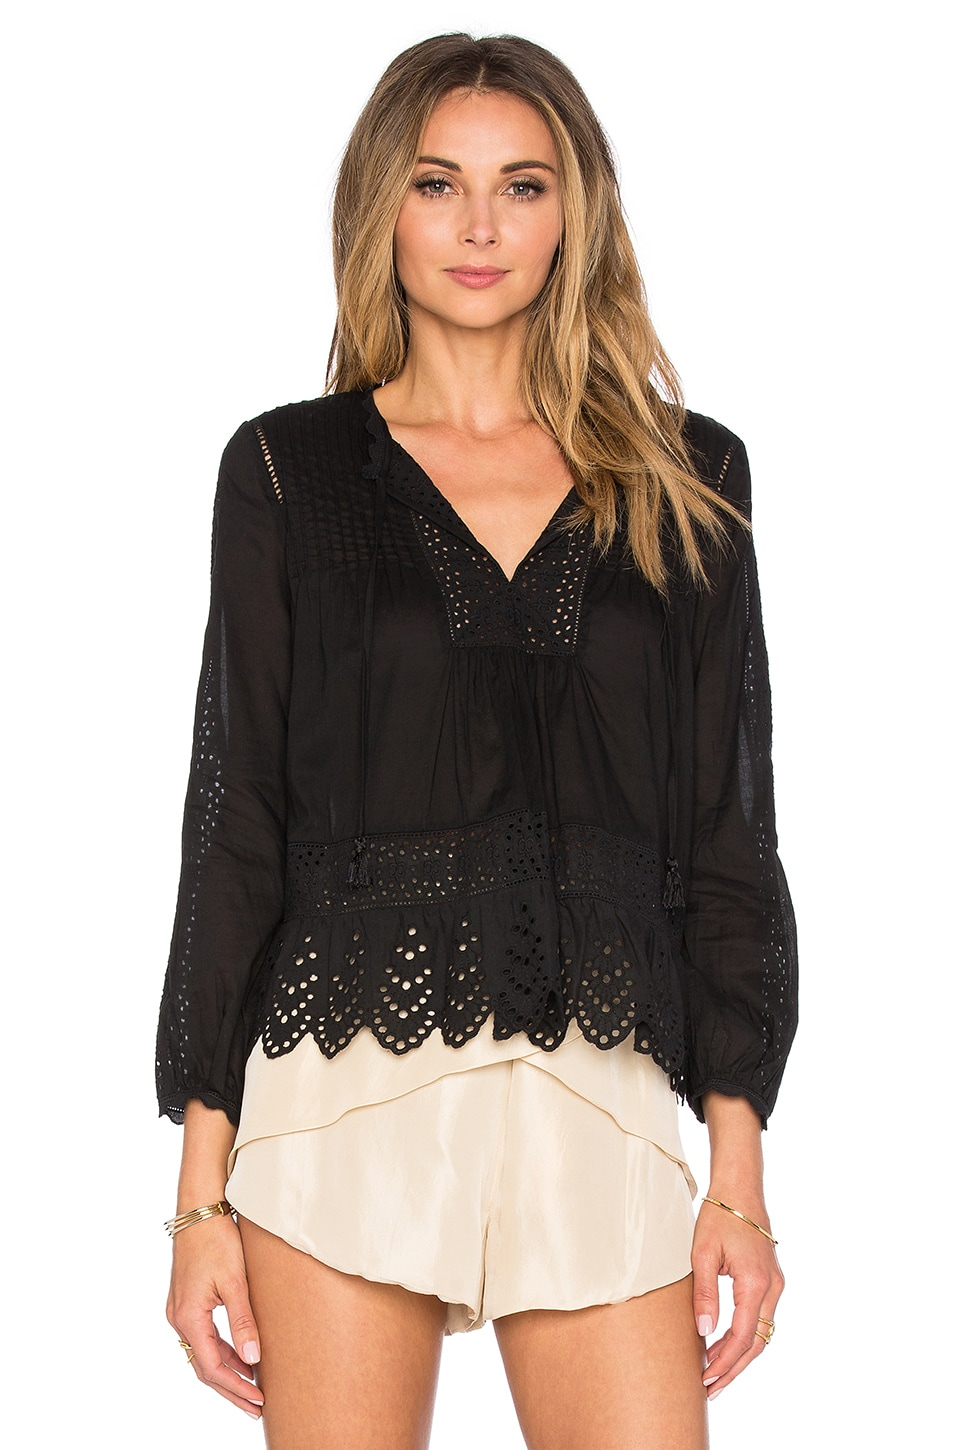 Long Sleeve Voile Lace Top at REVOLVE